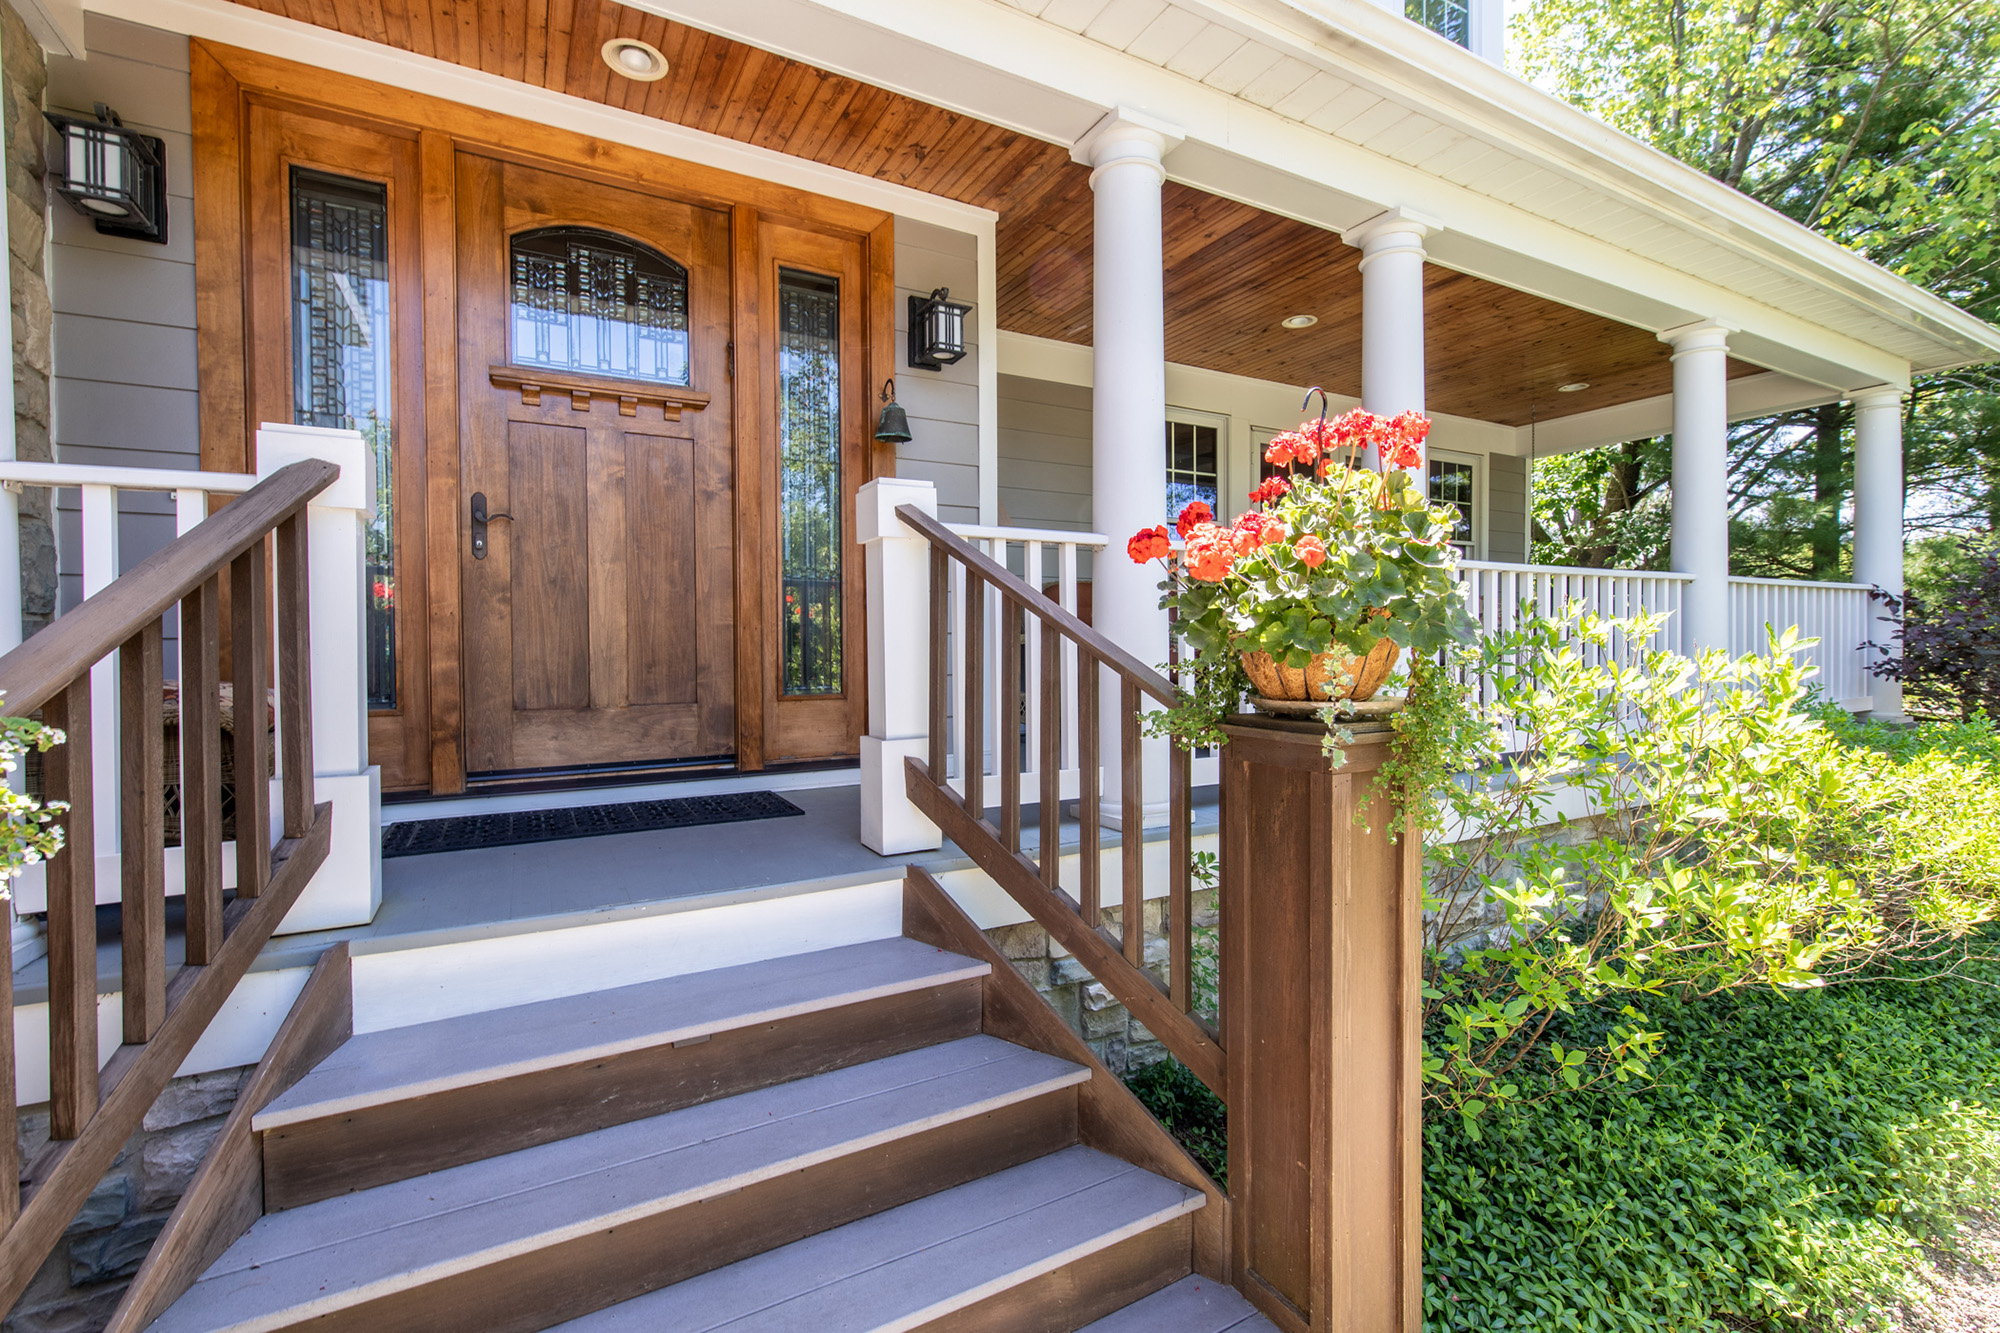 4 Timber front porch